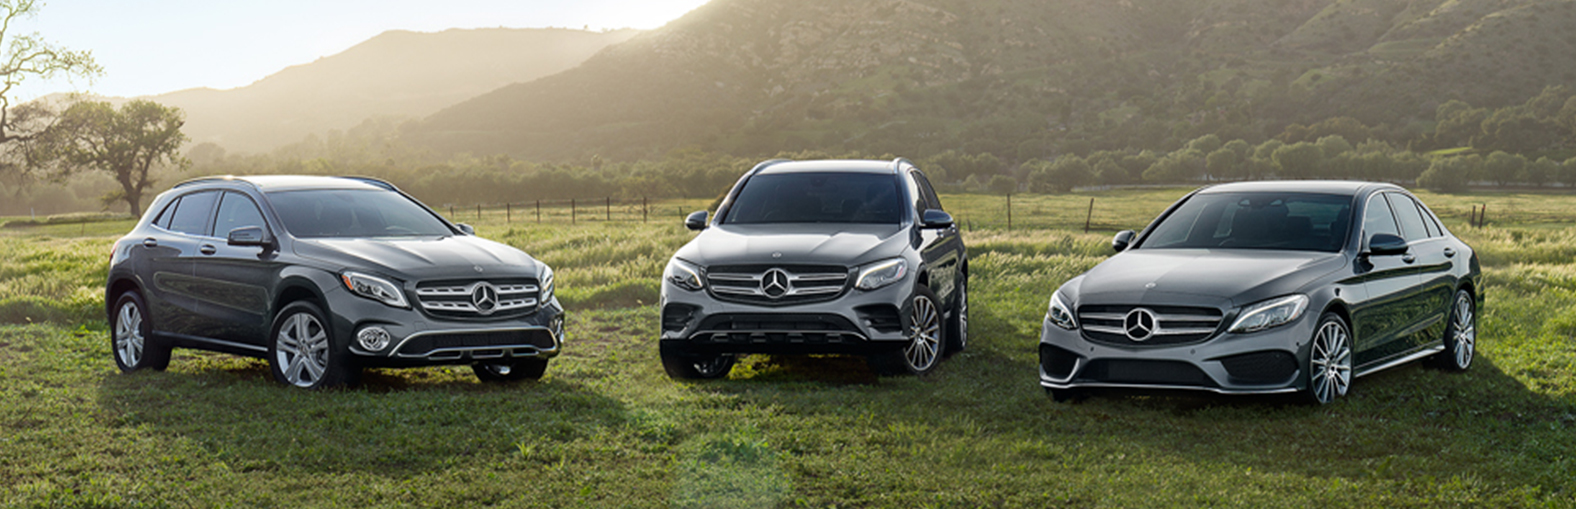 Mercedes-Benz of Augusta is the preferred dealership for used cars in Augusta